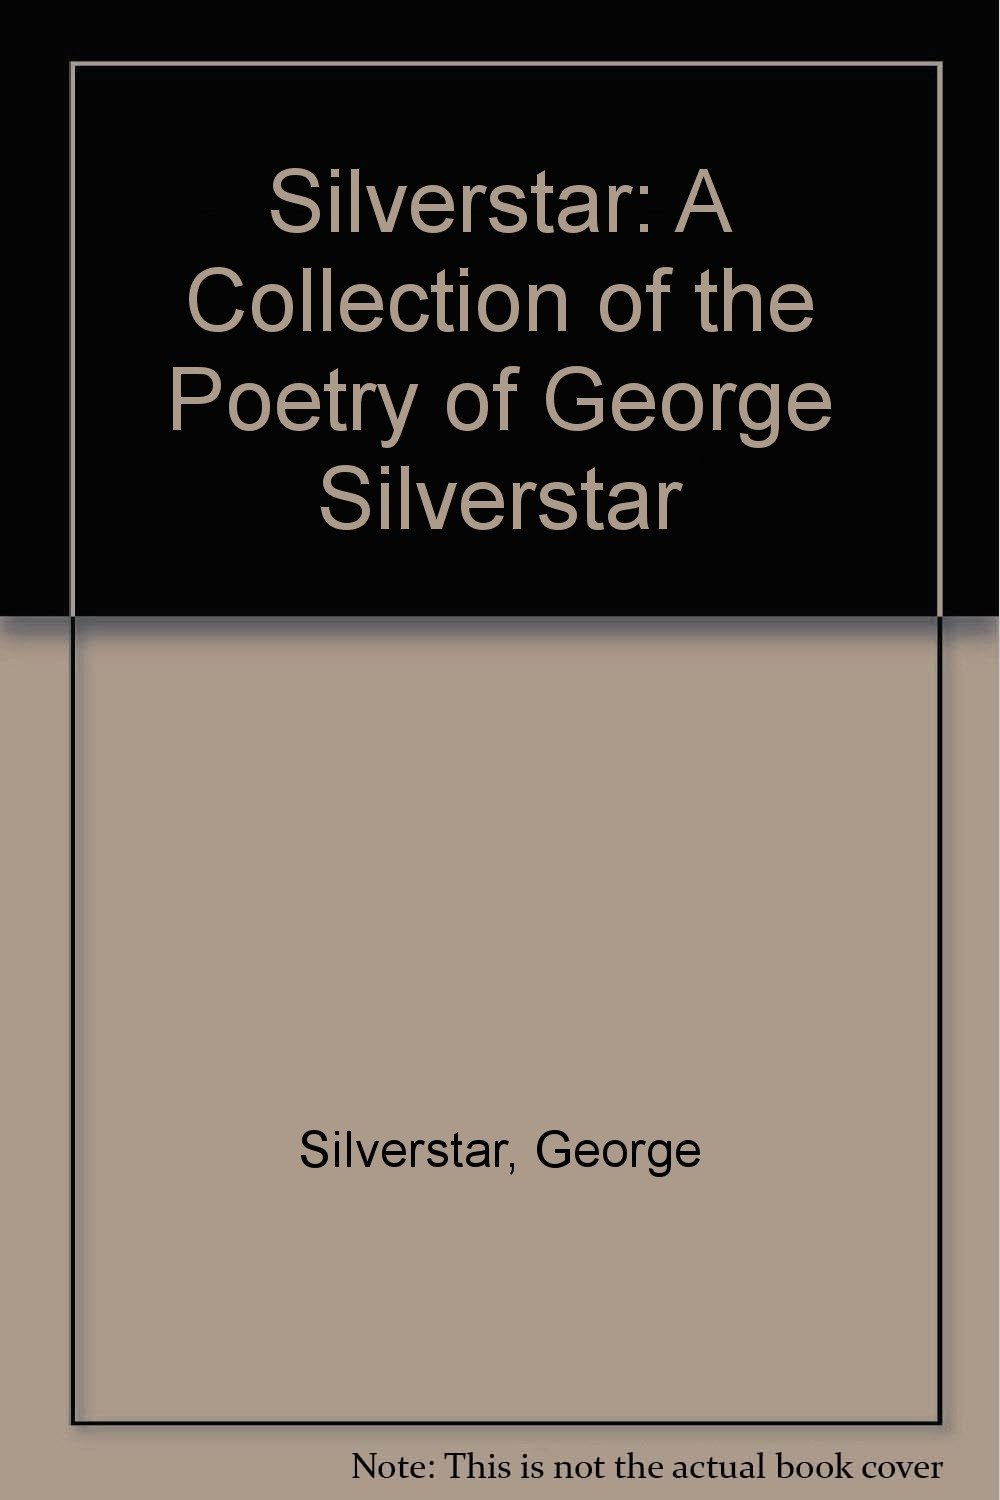 Silverstar: A Collection of the Poetry of George Silverstar, Silverstar, George